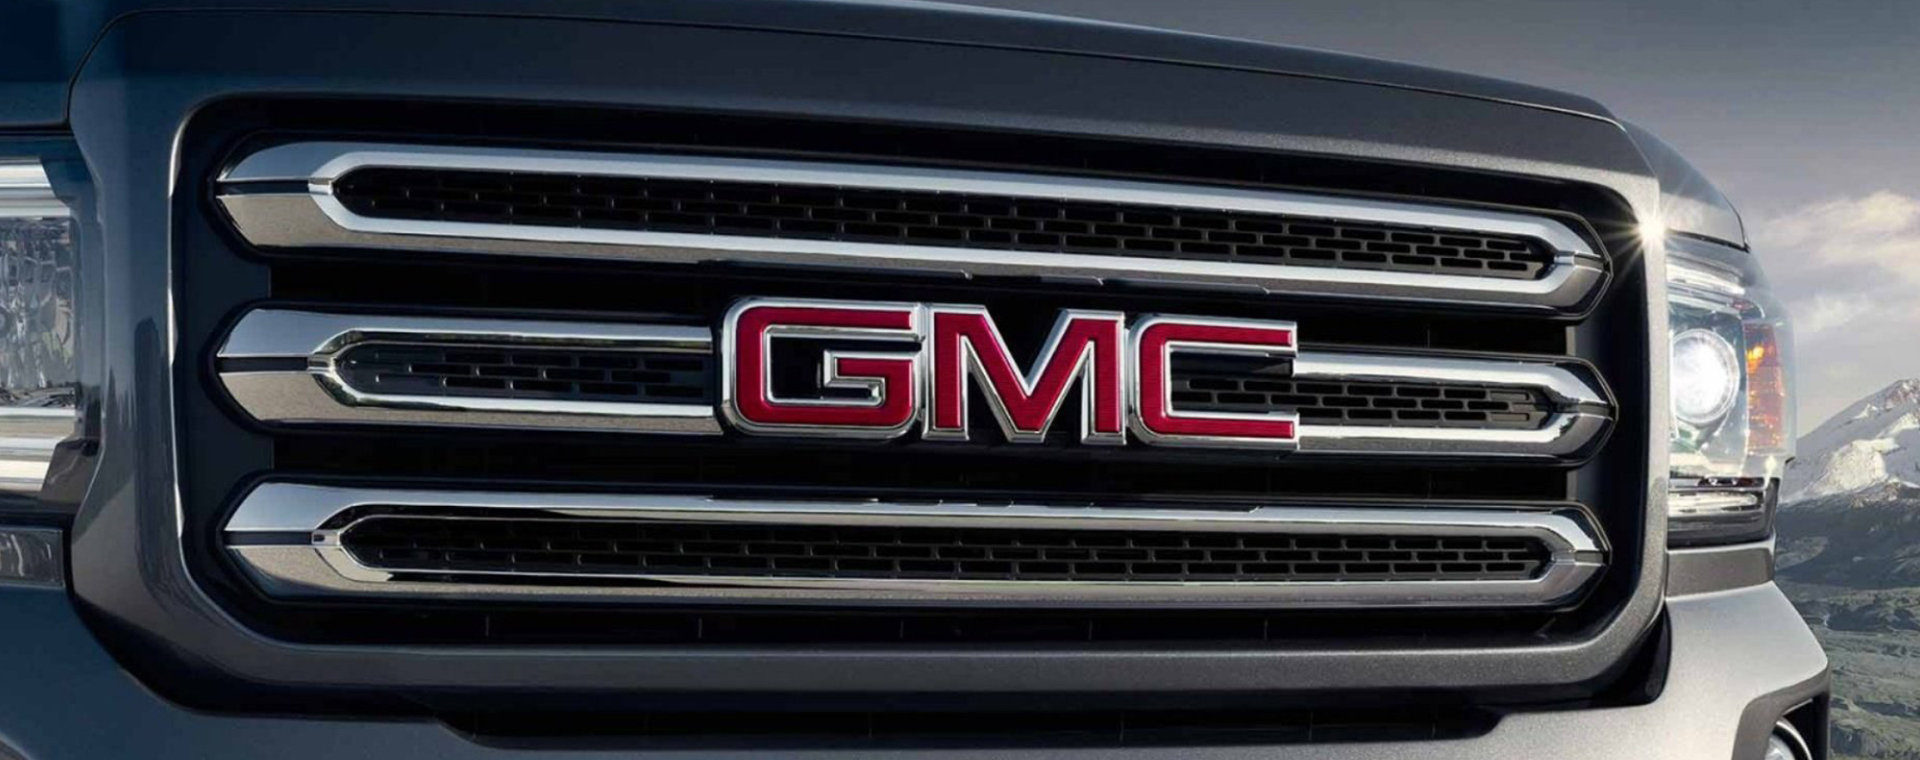 New Canyon inventory at Quirk Buick GMC